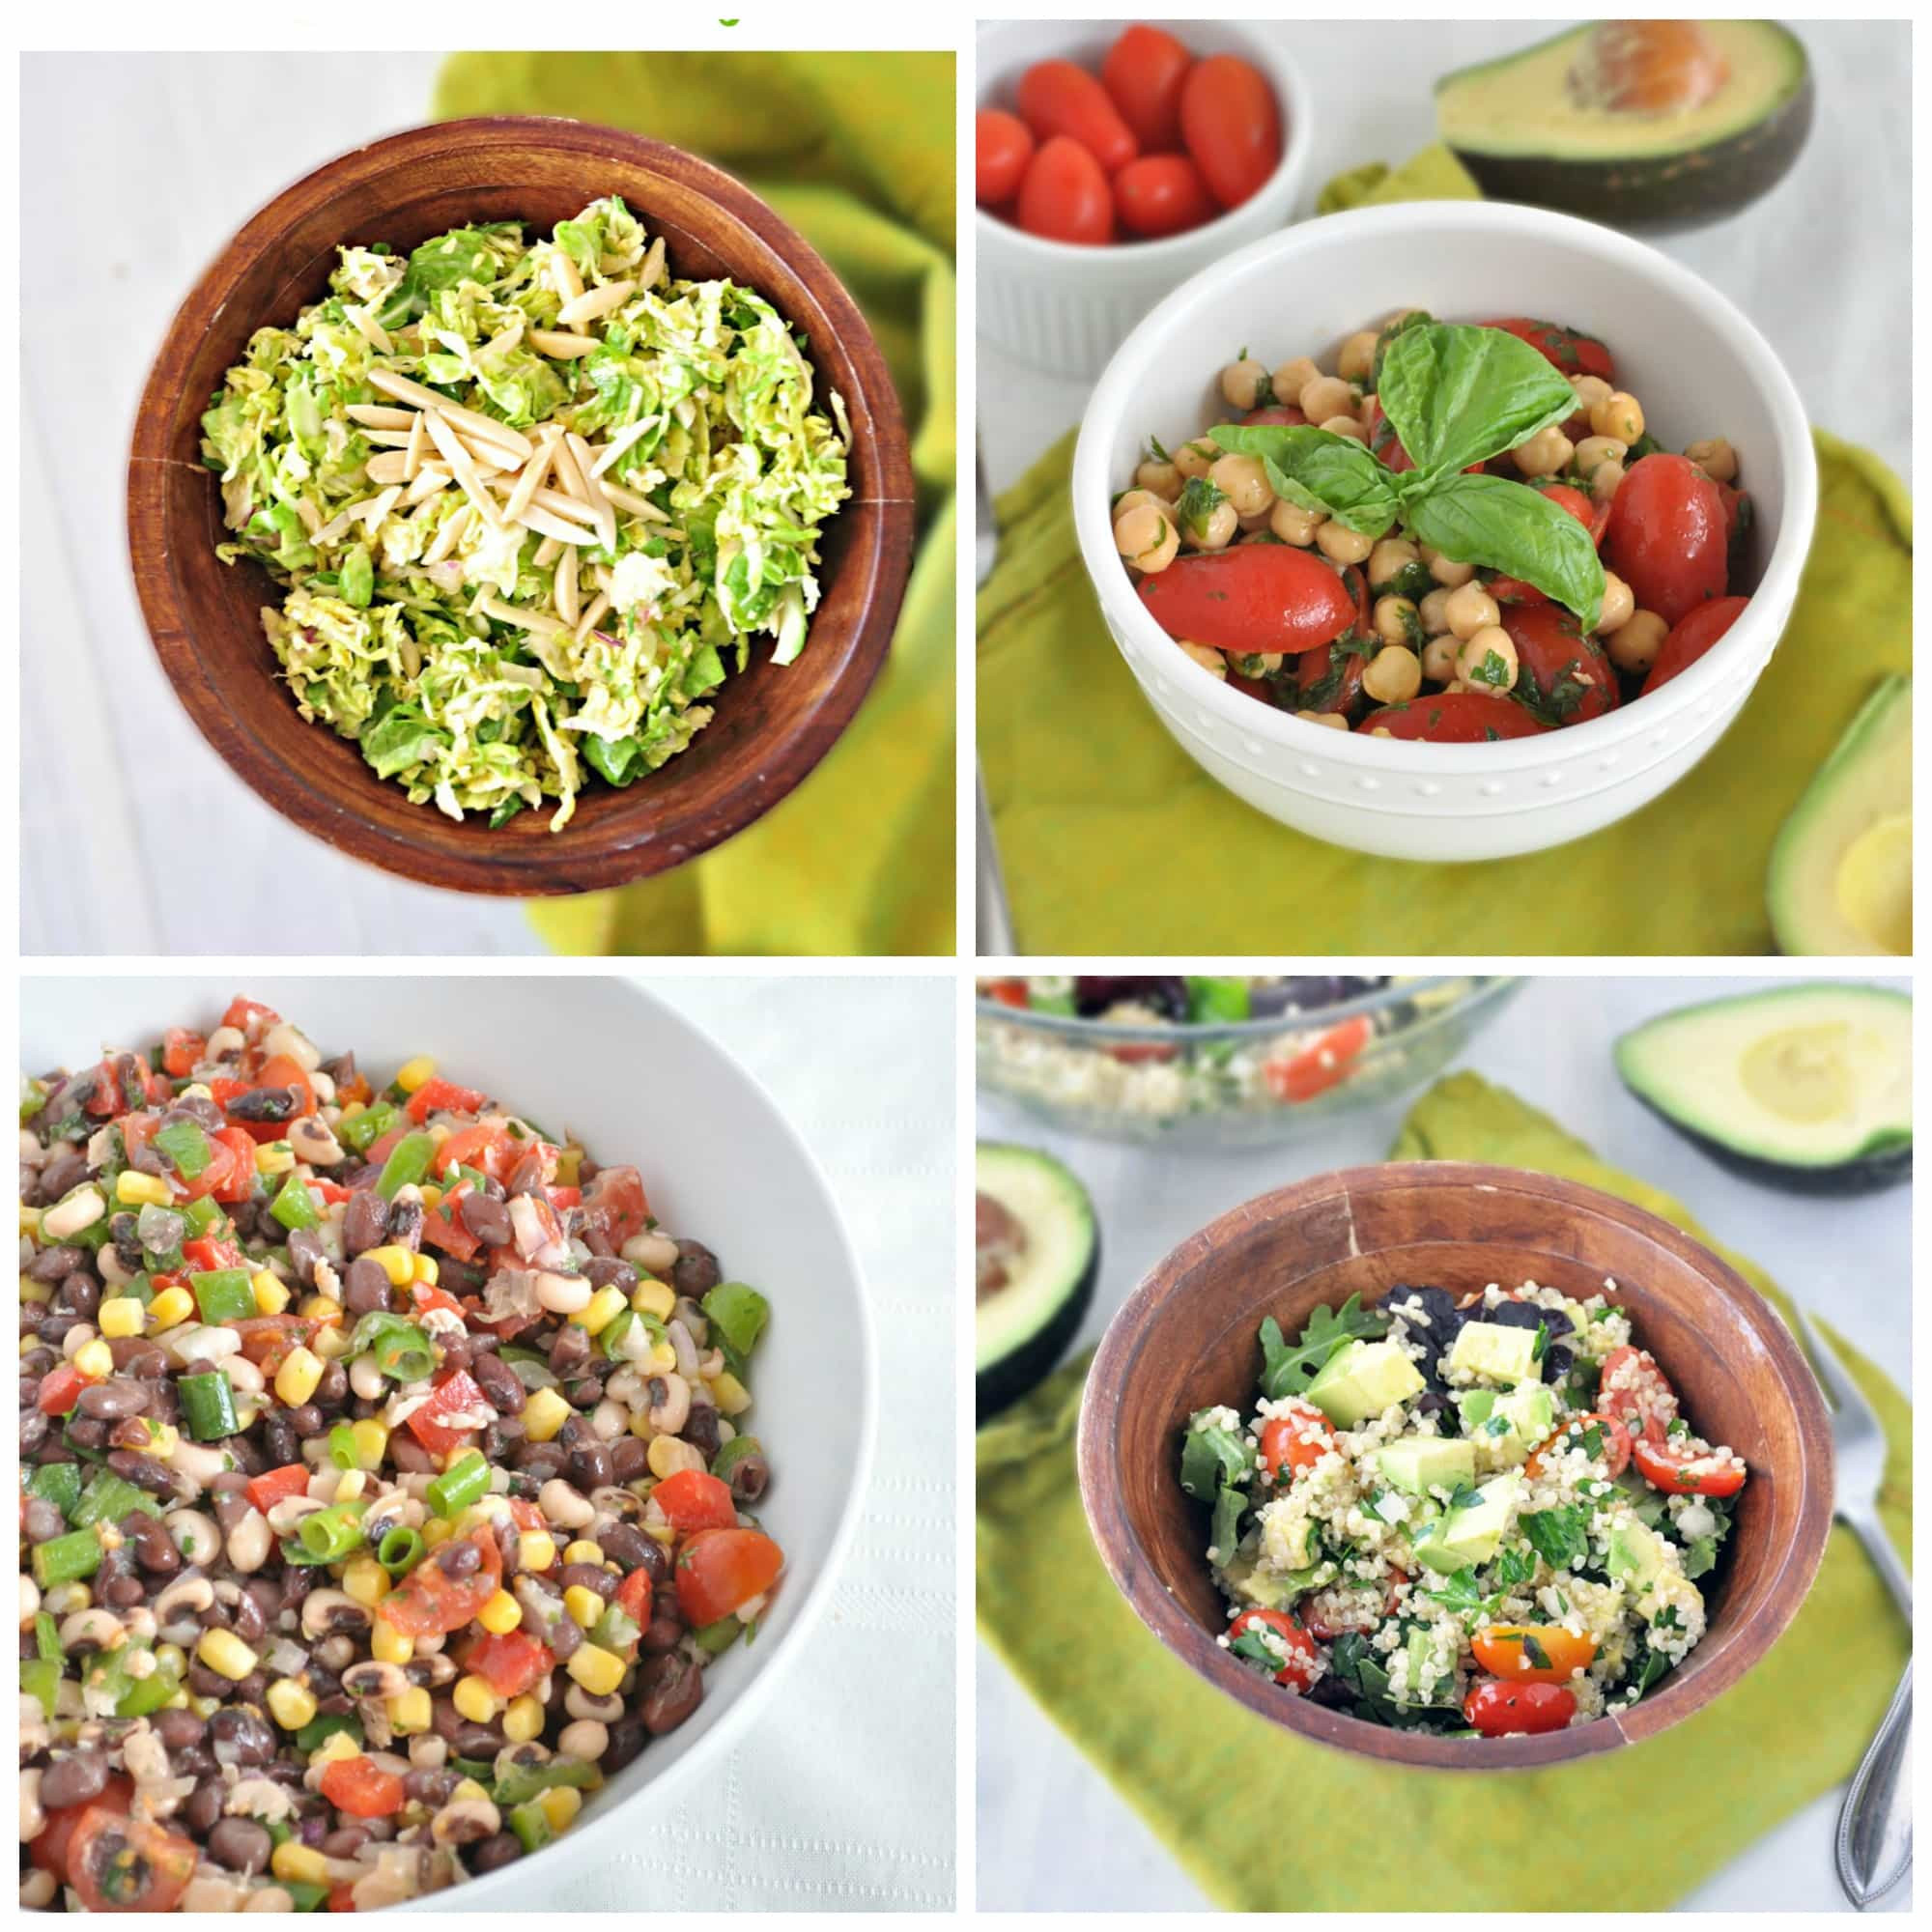 Easy Healthy Salads  18 Quick and Healthy Salad Ideas My Whole Food Life